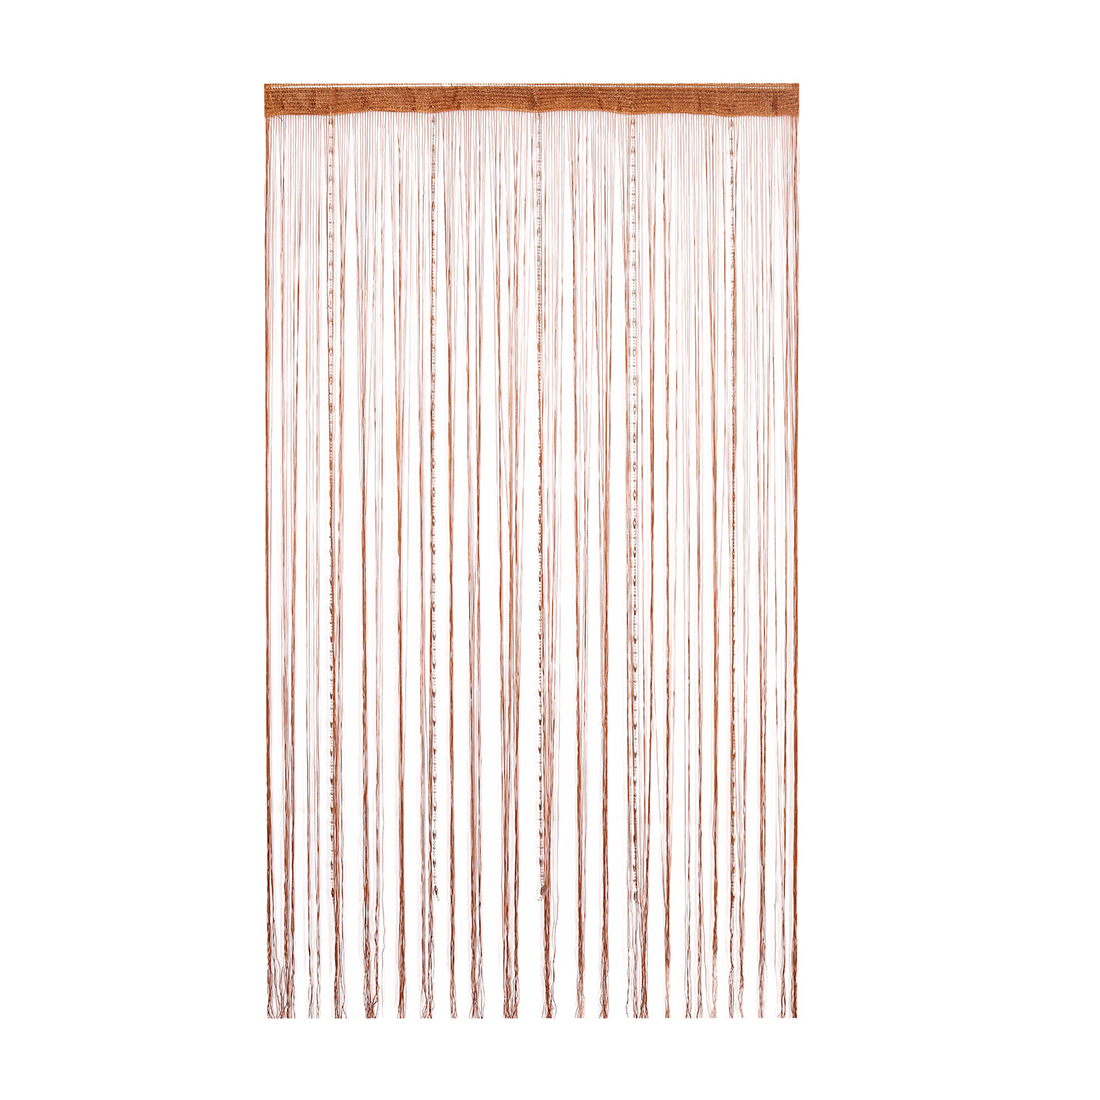 Dew Drop Beaded Chain String Divider 100x200cm Wall Door Curtain (Coffee Color)